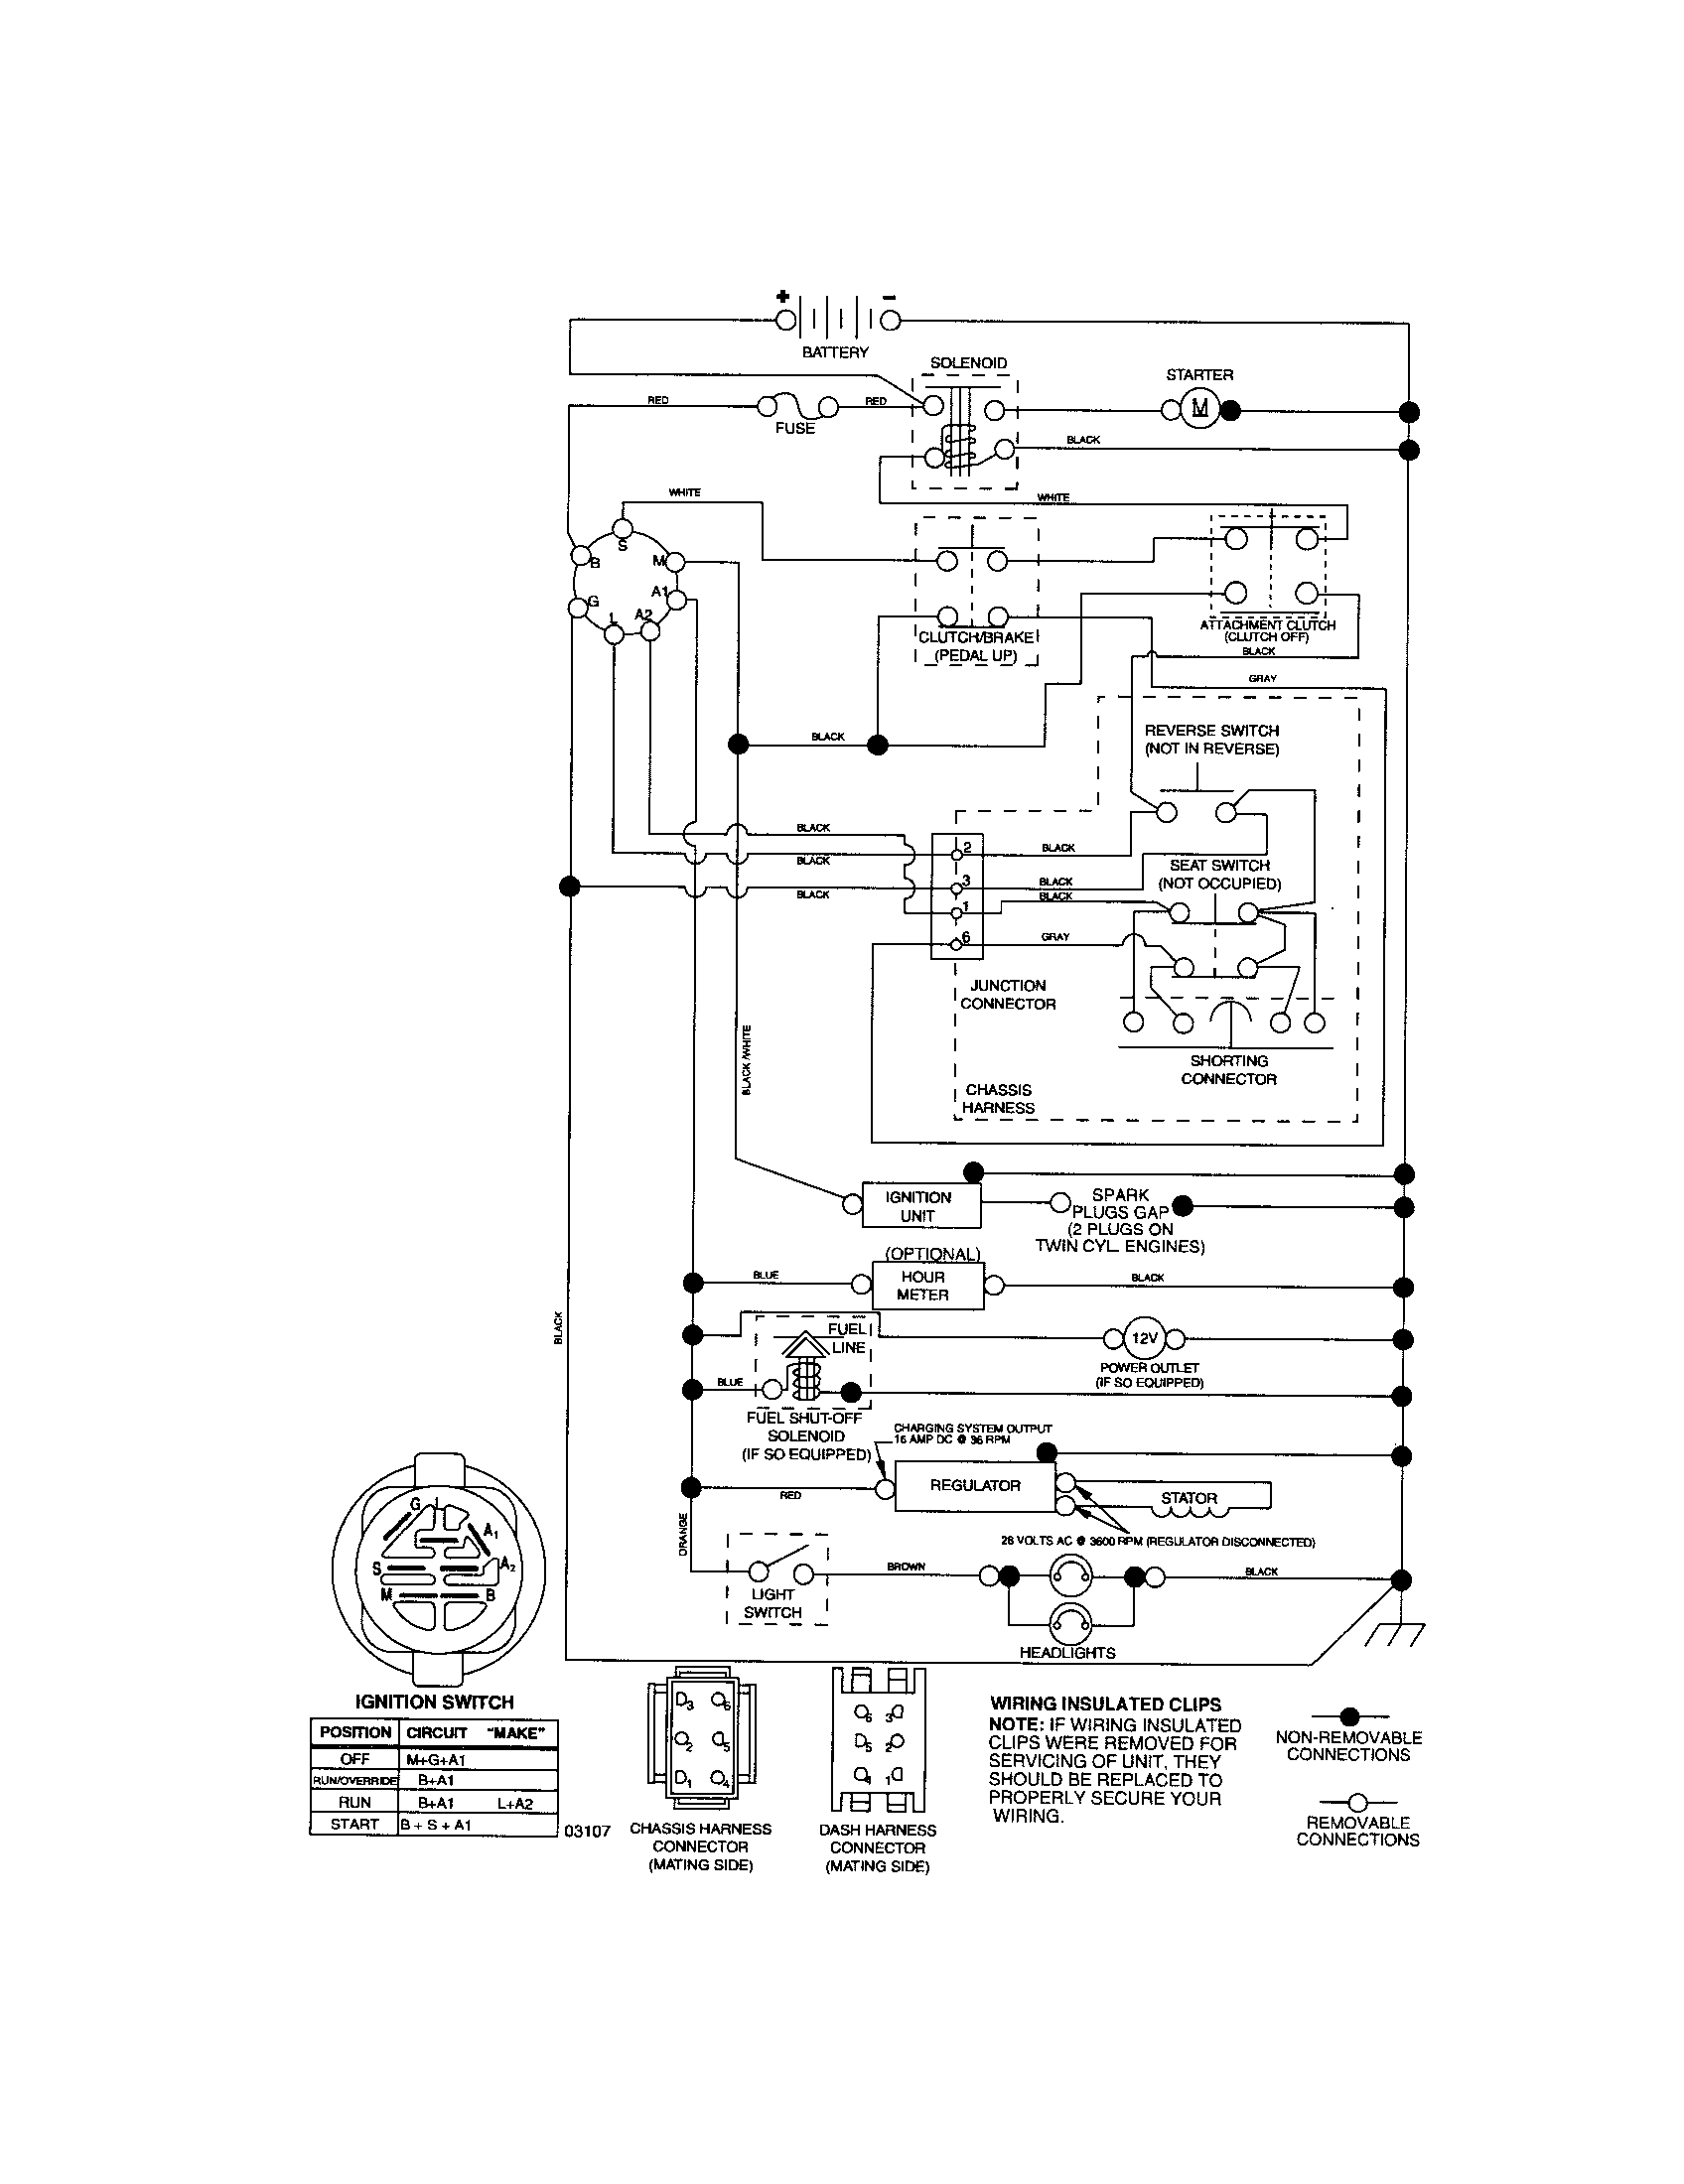 7 Pin Agriculture Wiring Diagram - Great Installation Of Wiring - Semi Trailer 7 Pin Wiring Diagram